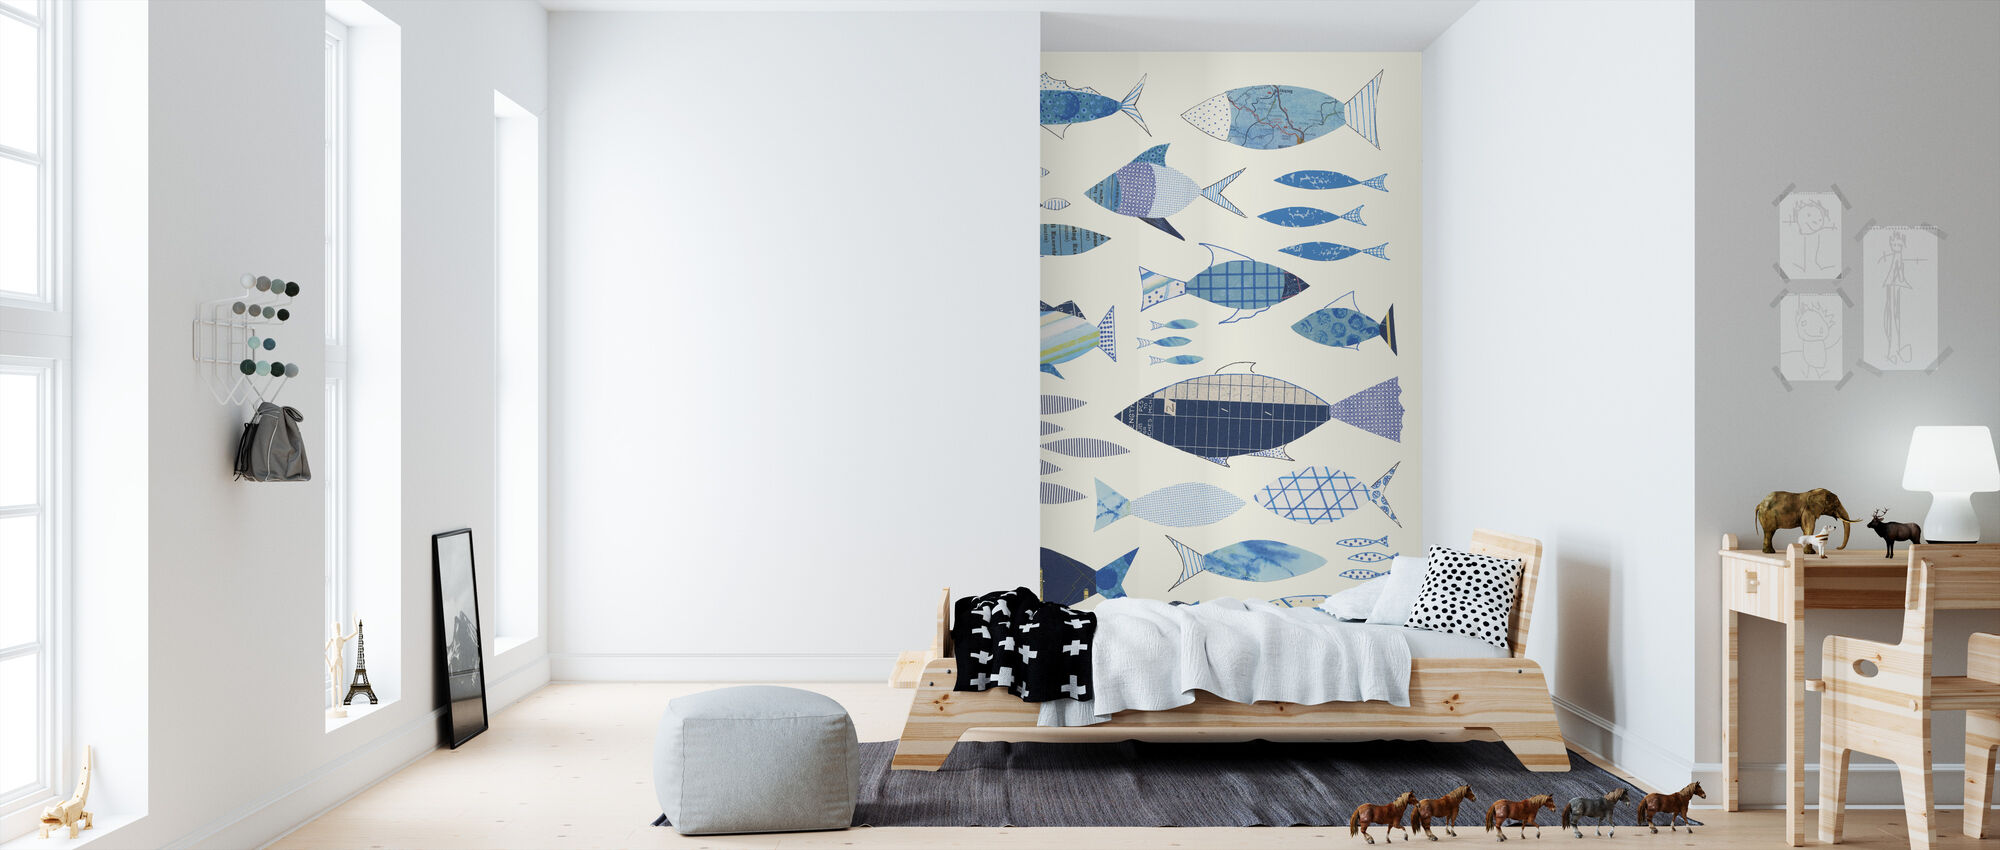 Go With the Flow I - Wallpaper - Kids Room